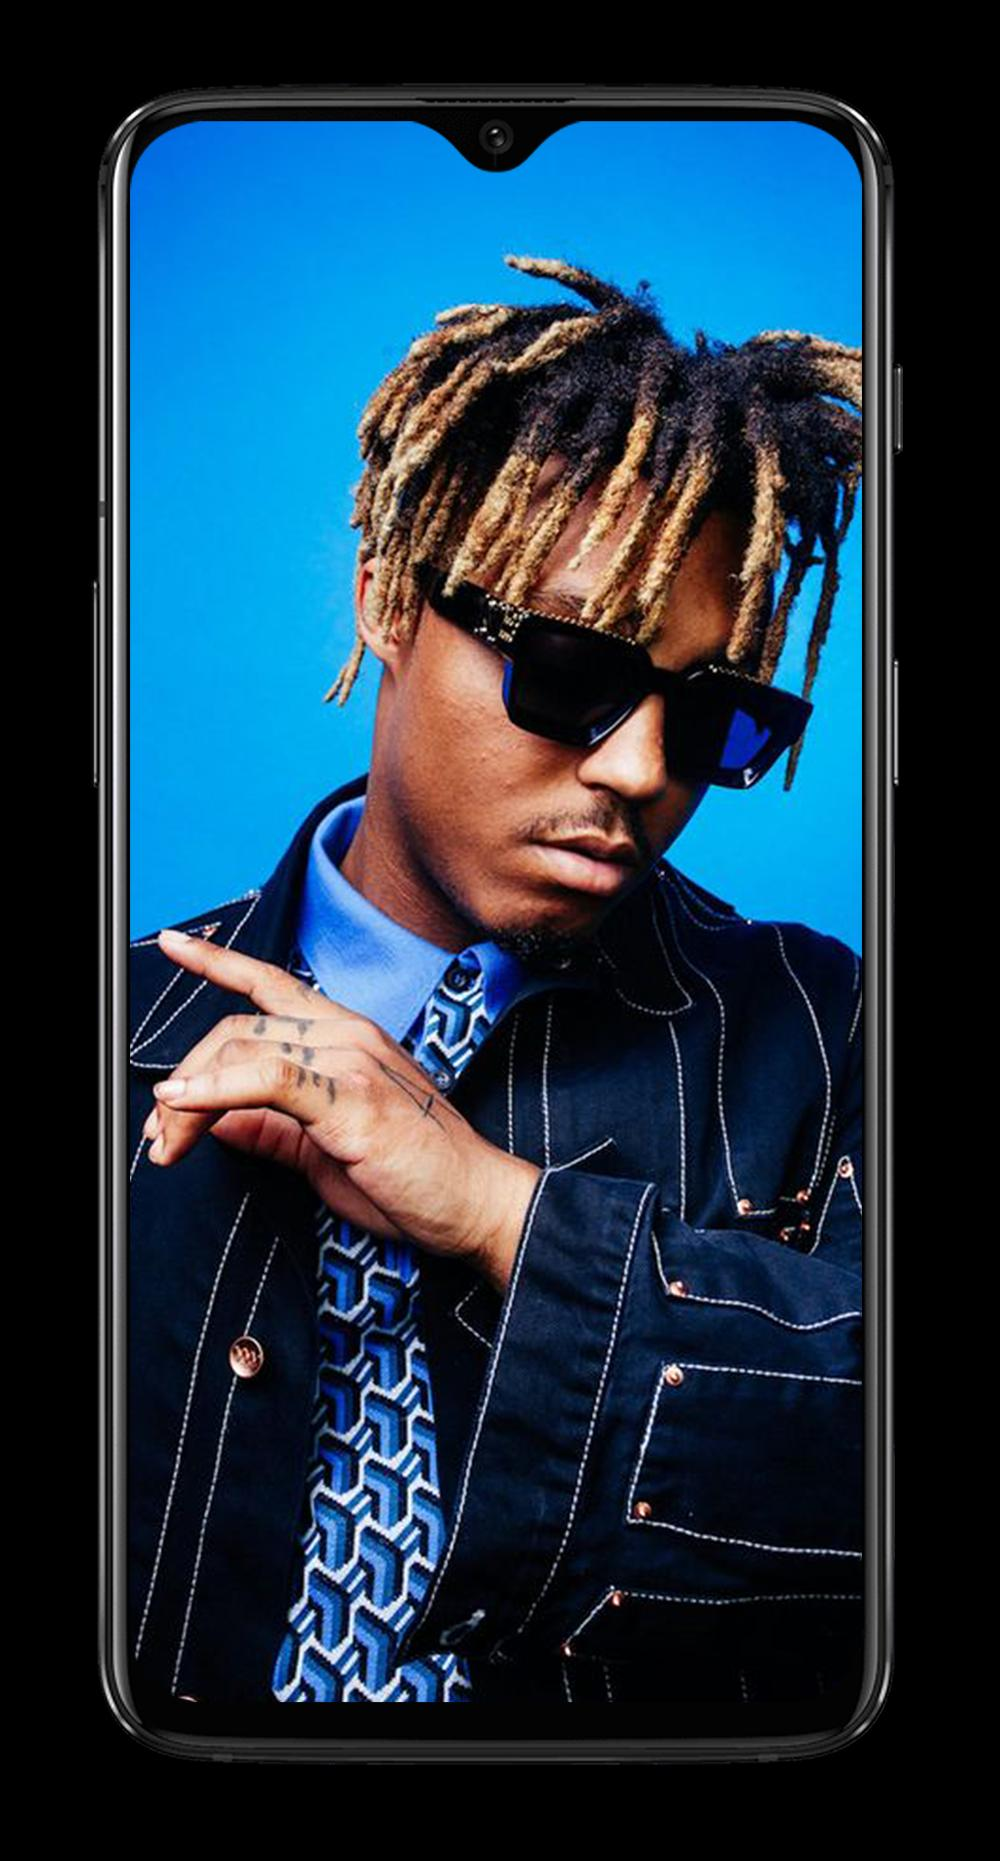 Juice Wrld 4k Wallpaper For Android Apk Download